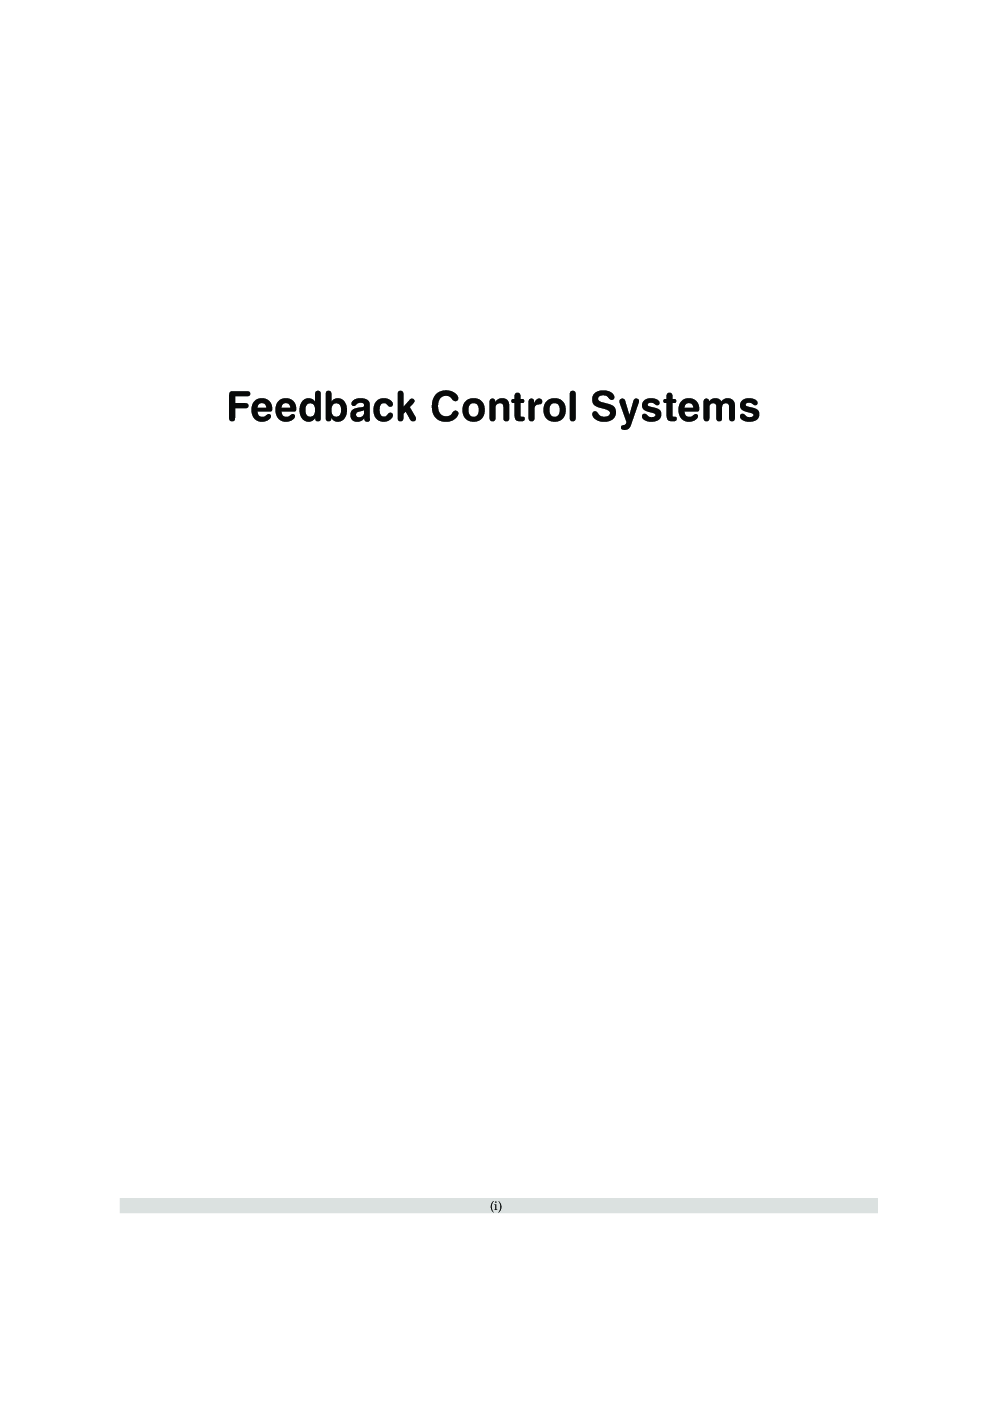 Feedback Control Systems (A Conceptual Approach) - Page 2